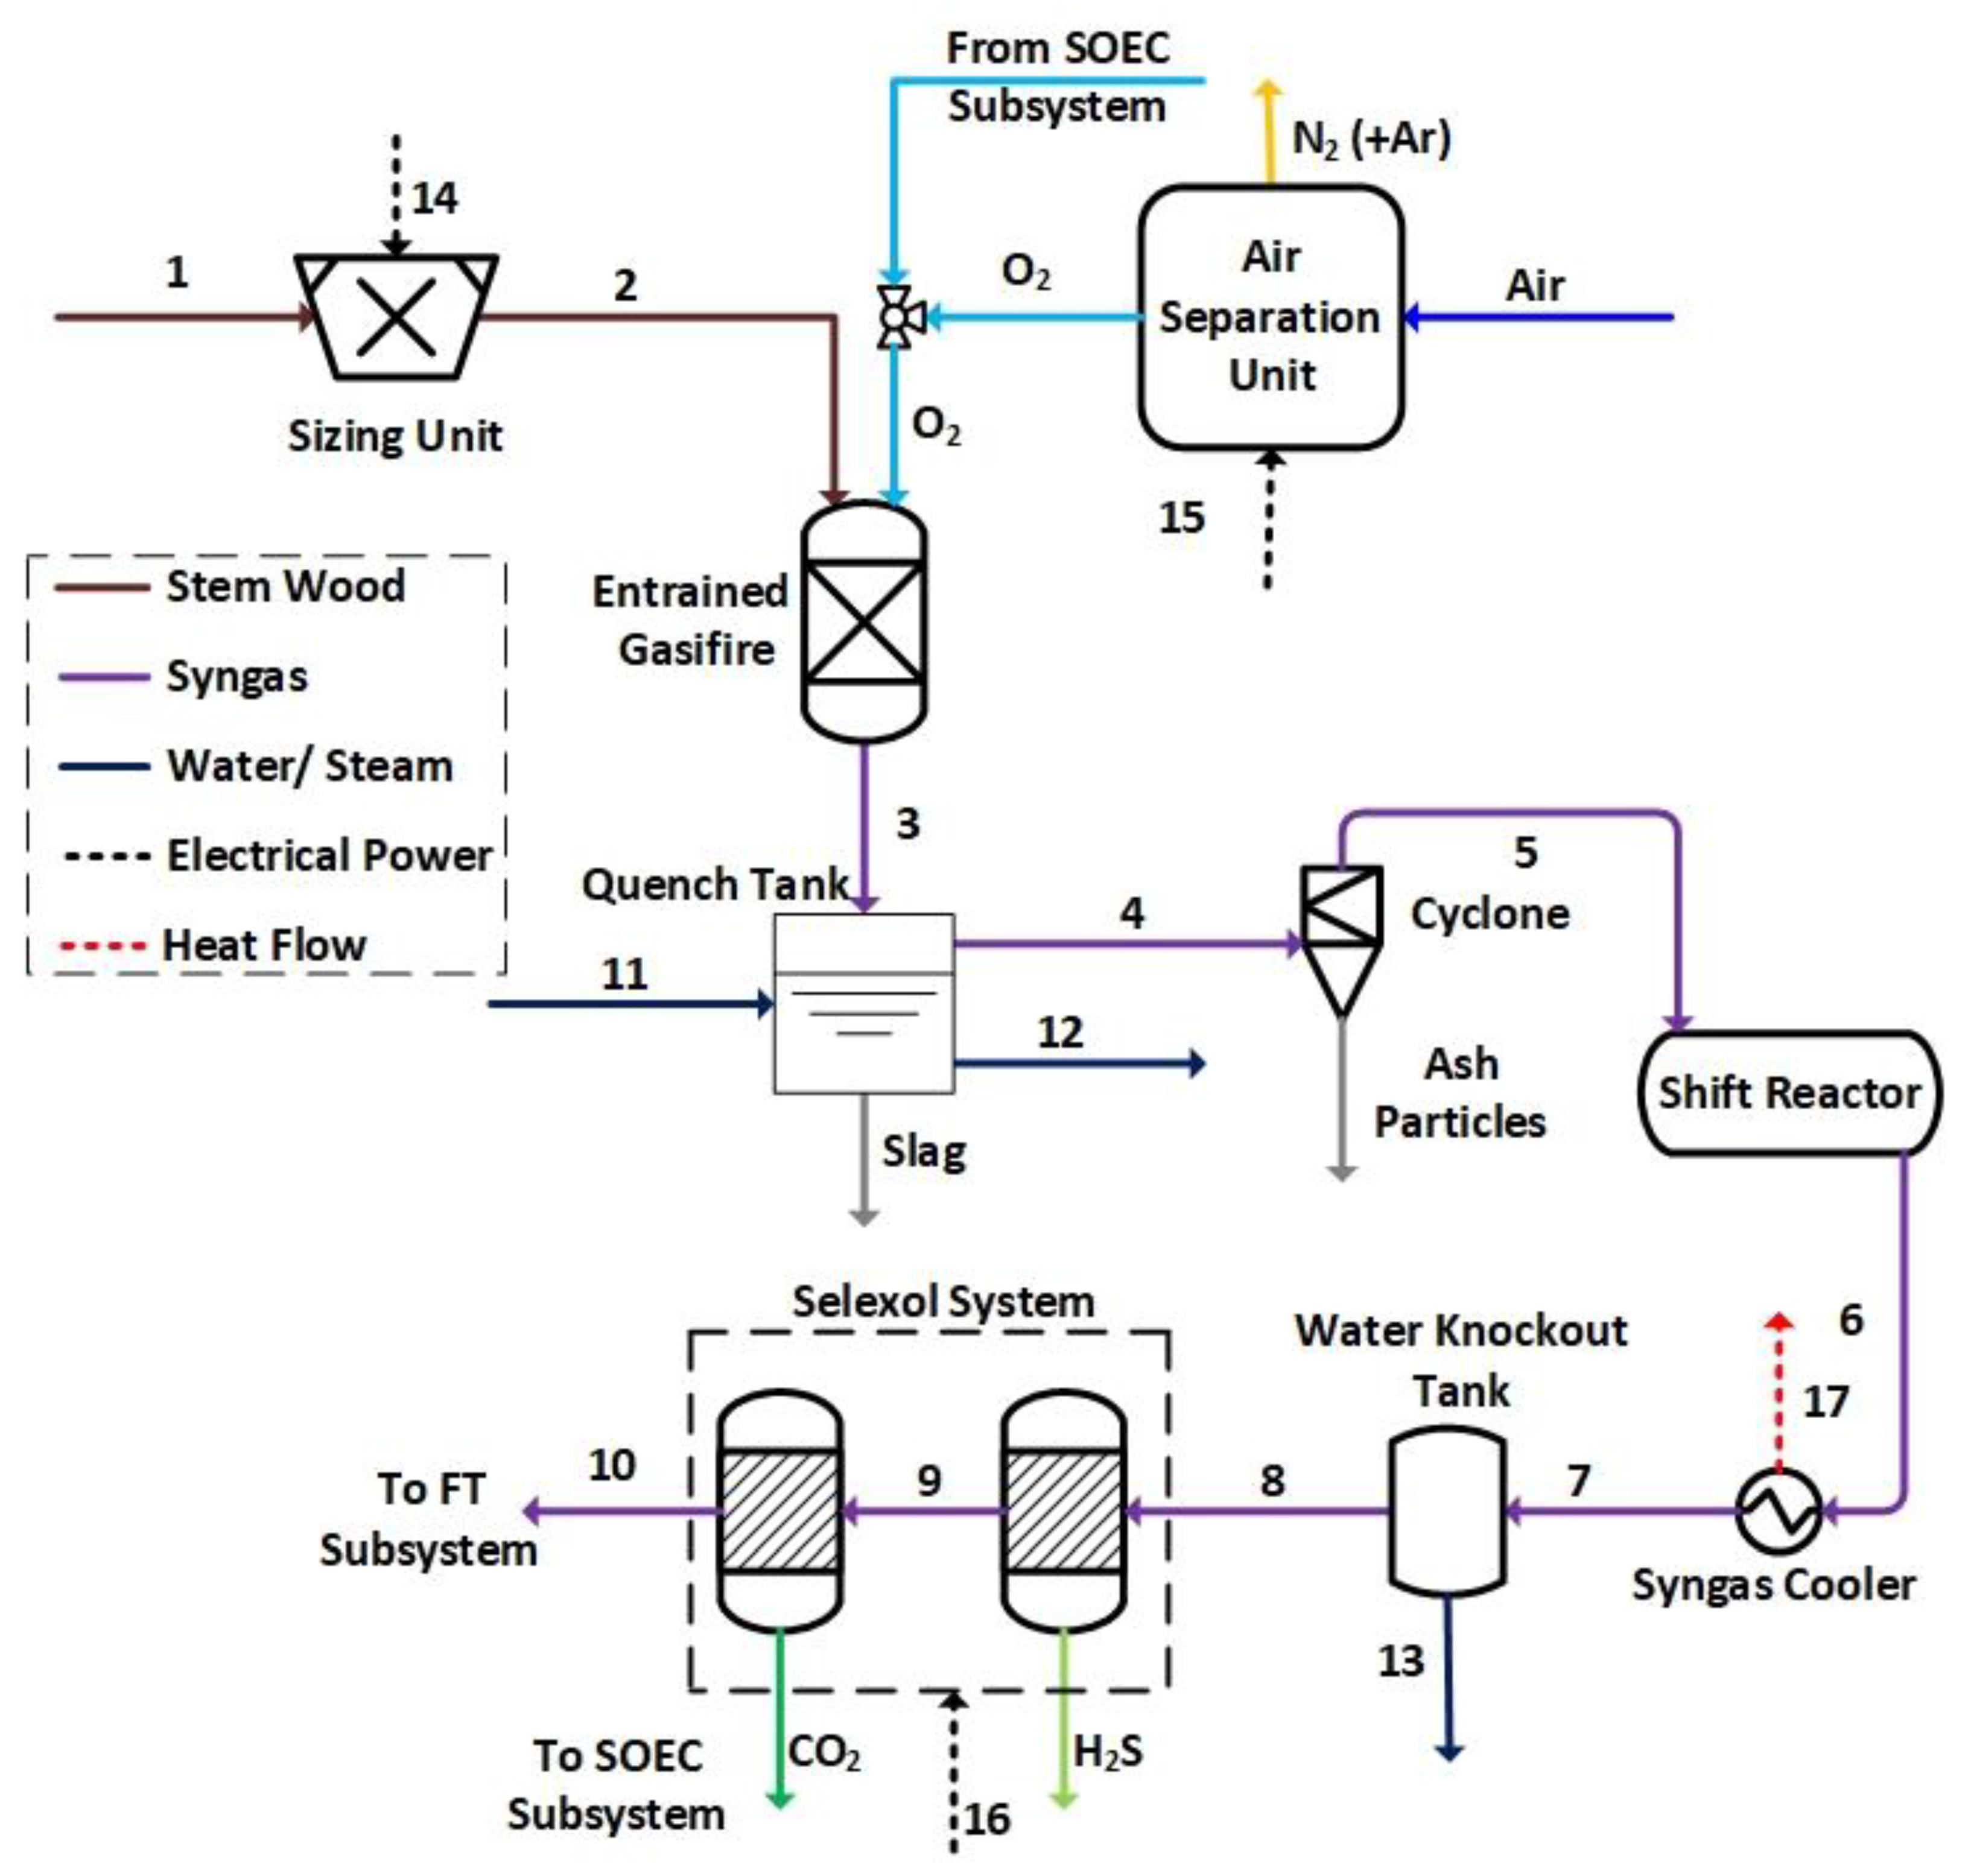 Energies Free Full Text Synthetic Diesel Production As A Form Of Heating Diagram Likewise Wind And Solar Battery Bank Wiring 11 01223 G003 Figure 3 Schematic